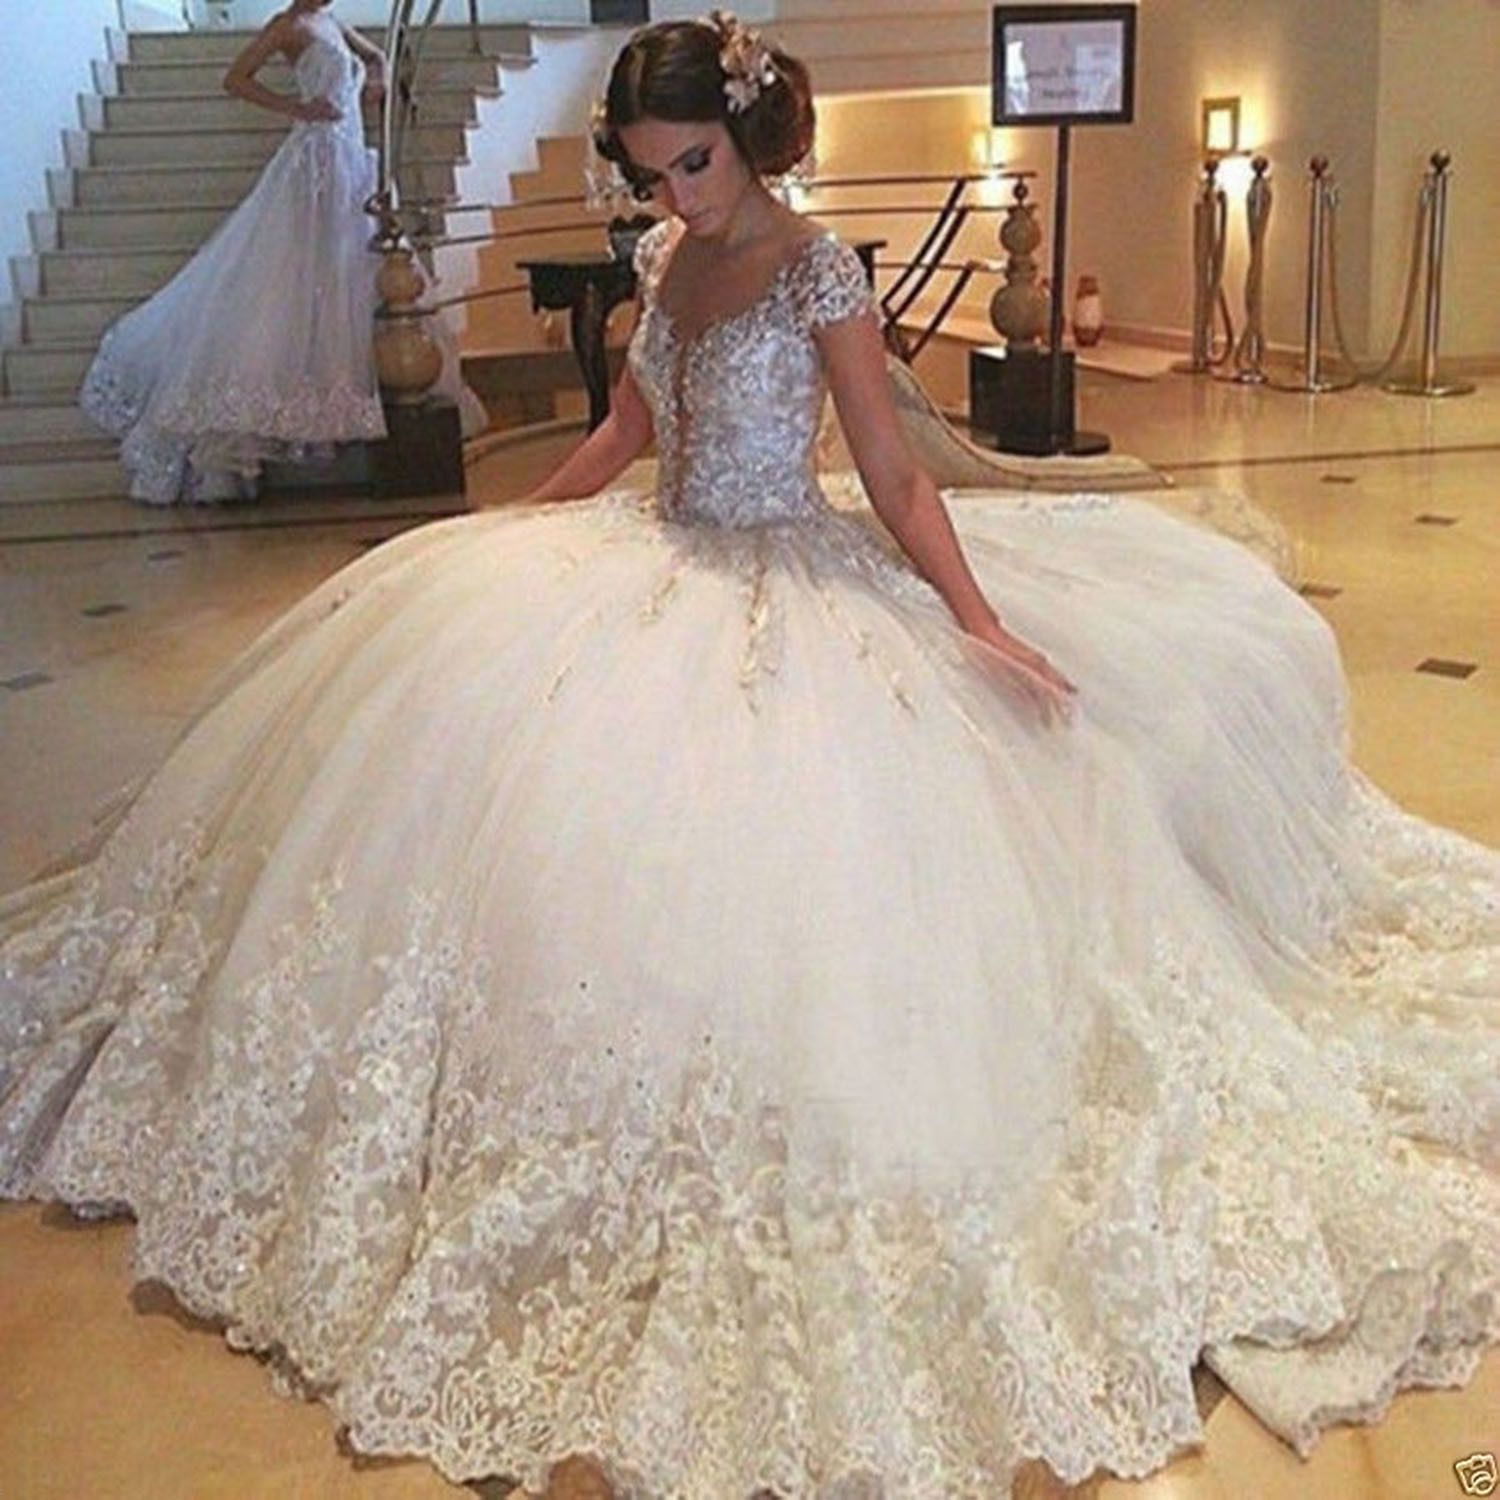 White puffy wedding dresses  Awesome Great WhiteIvory Lace Beaded Marriage Ball Gown Princess